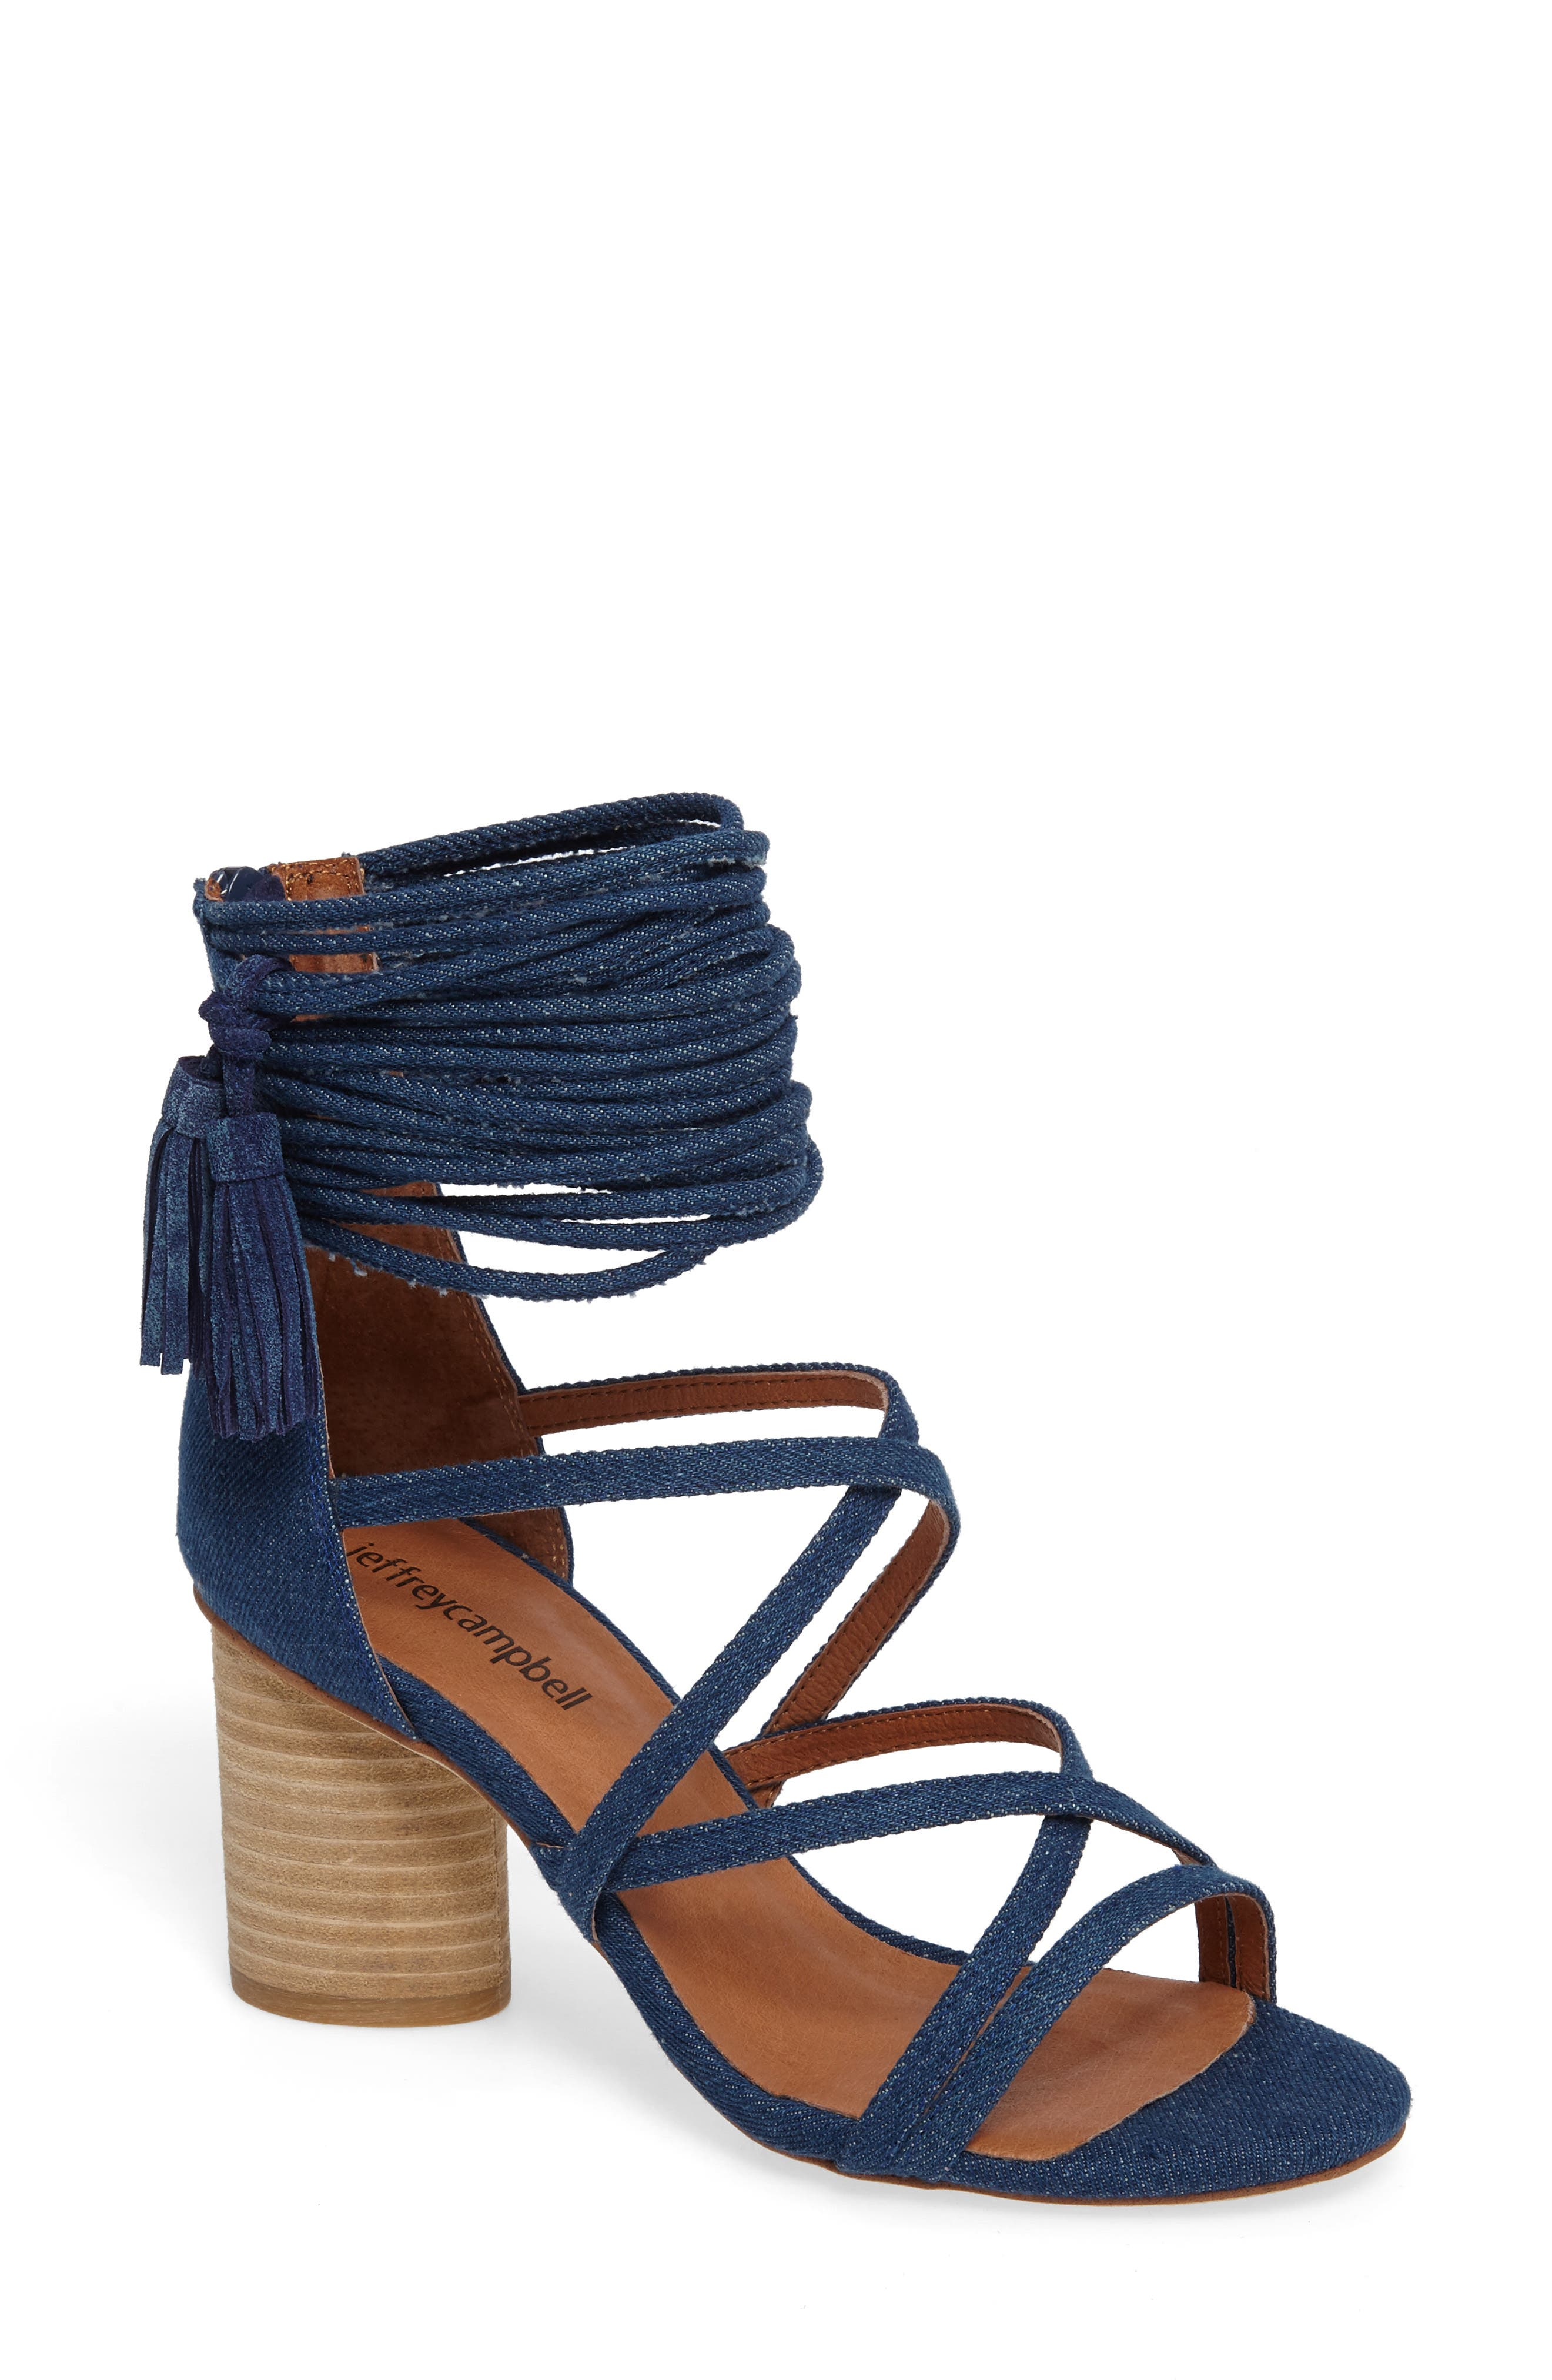 Yves Saint Laurent Leather Lattice Sandals cheap sale new styles buy cheap choice store sale buy cheap get authentic sdNoyfWn